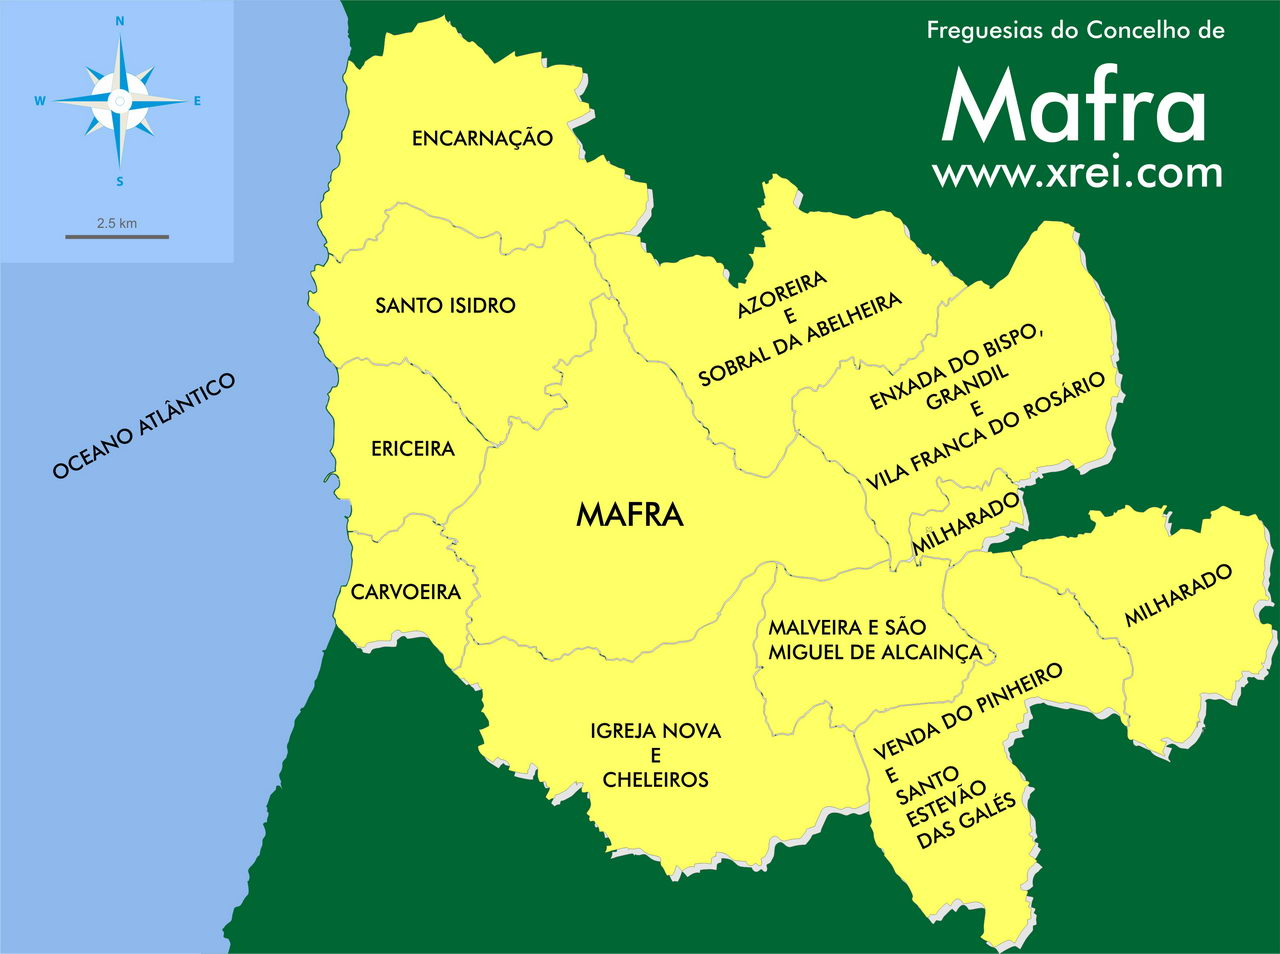 Map of the parishes of the municipality of Mafra